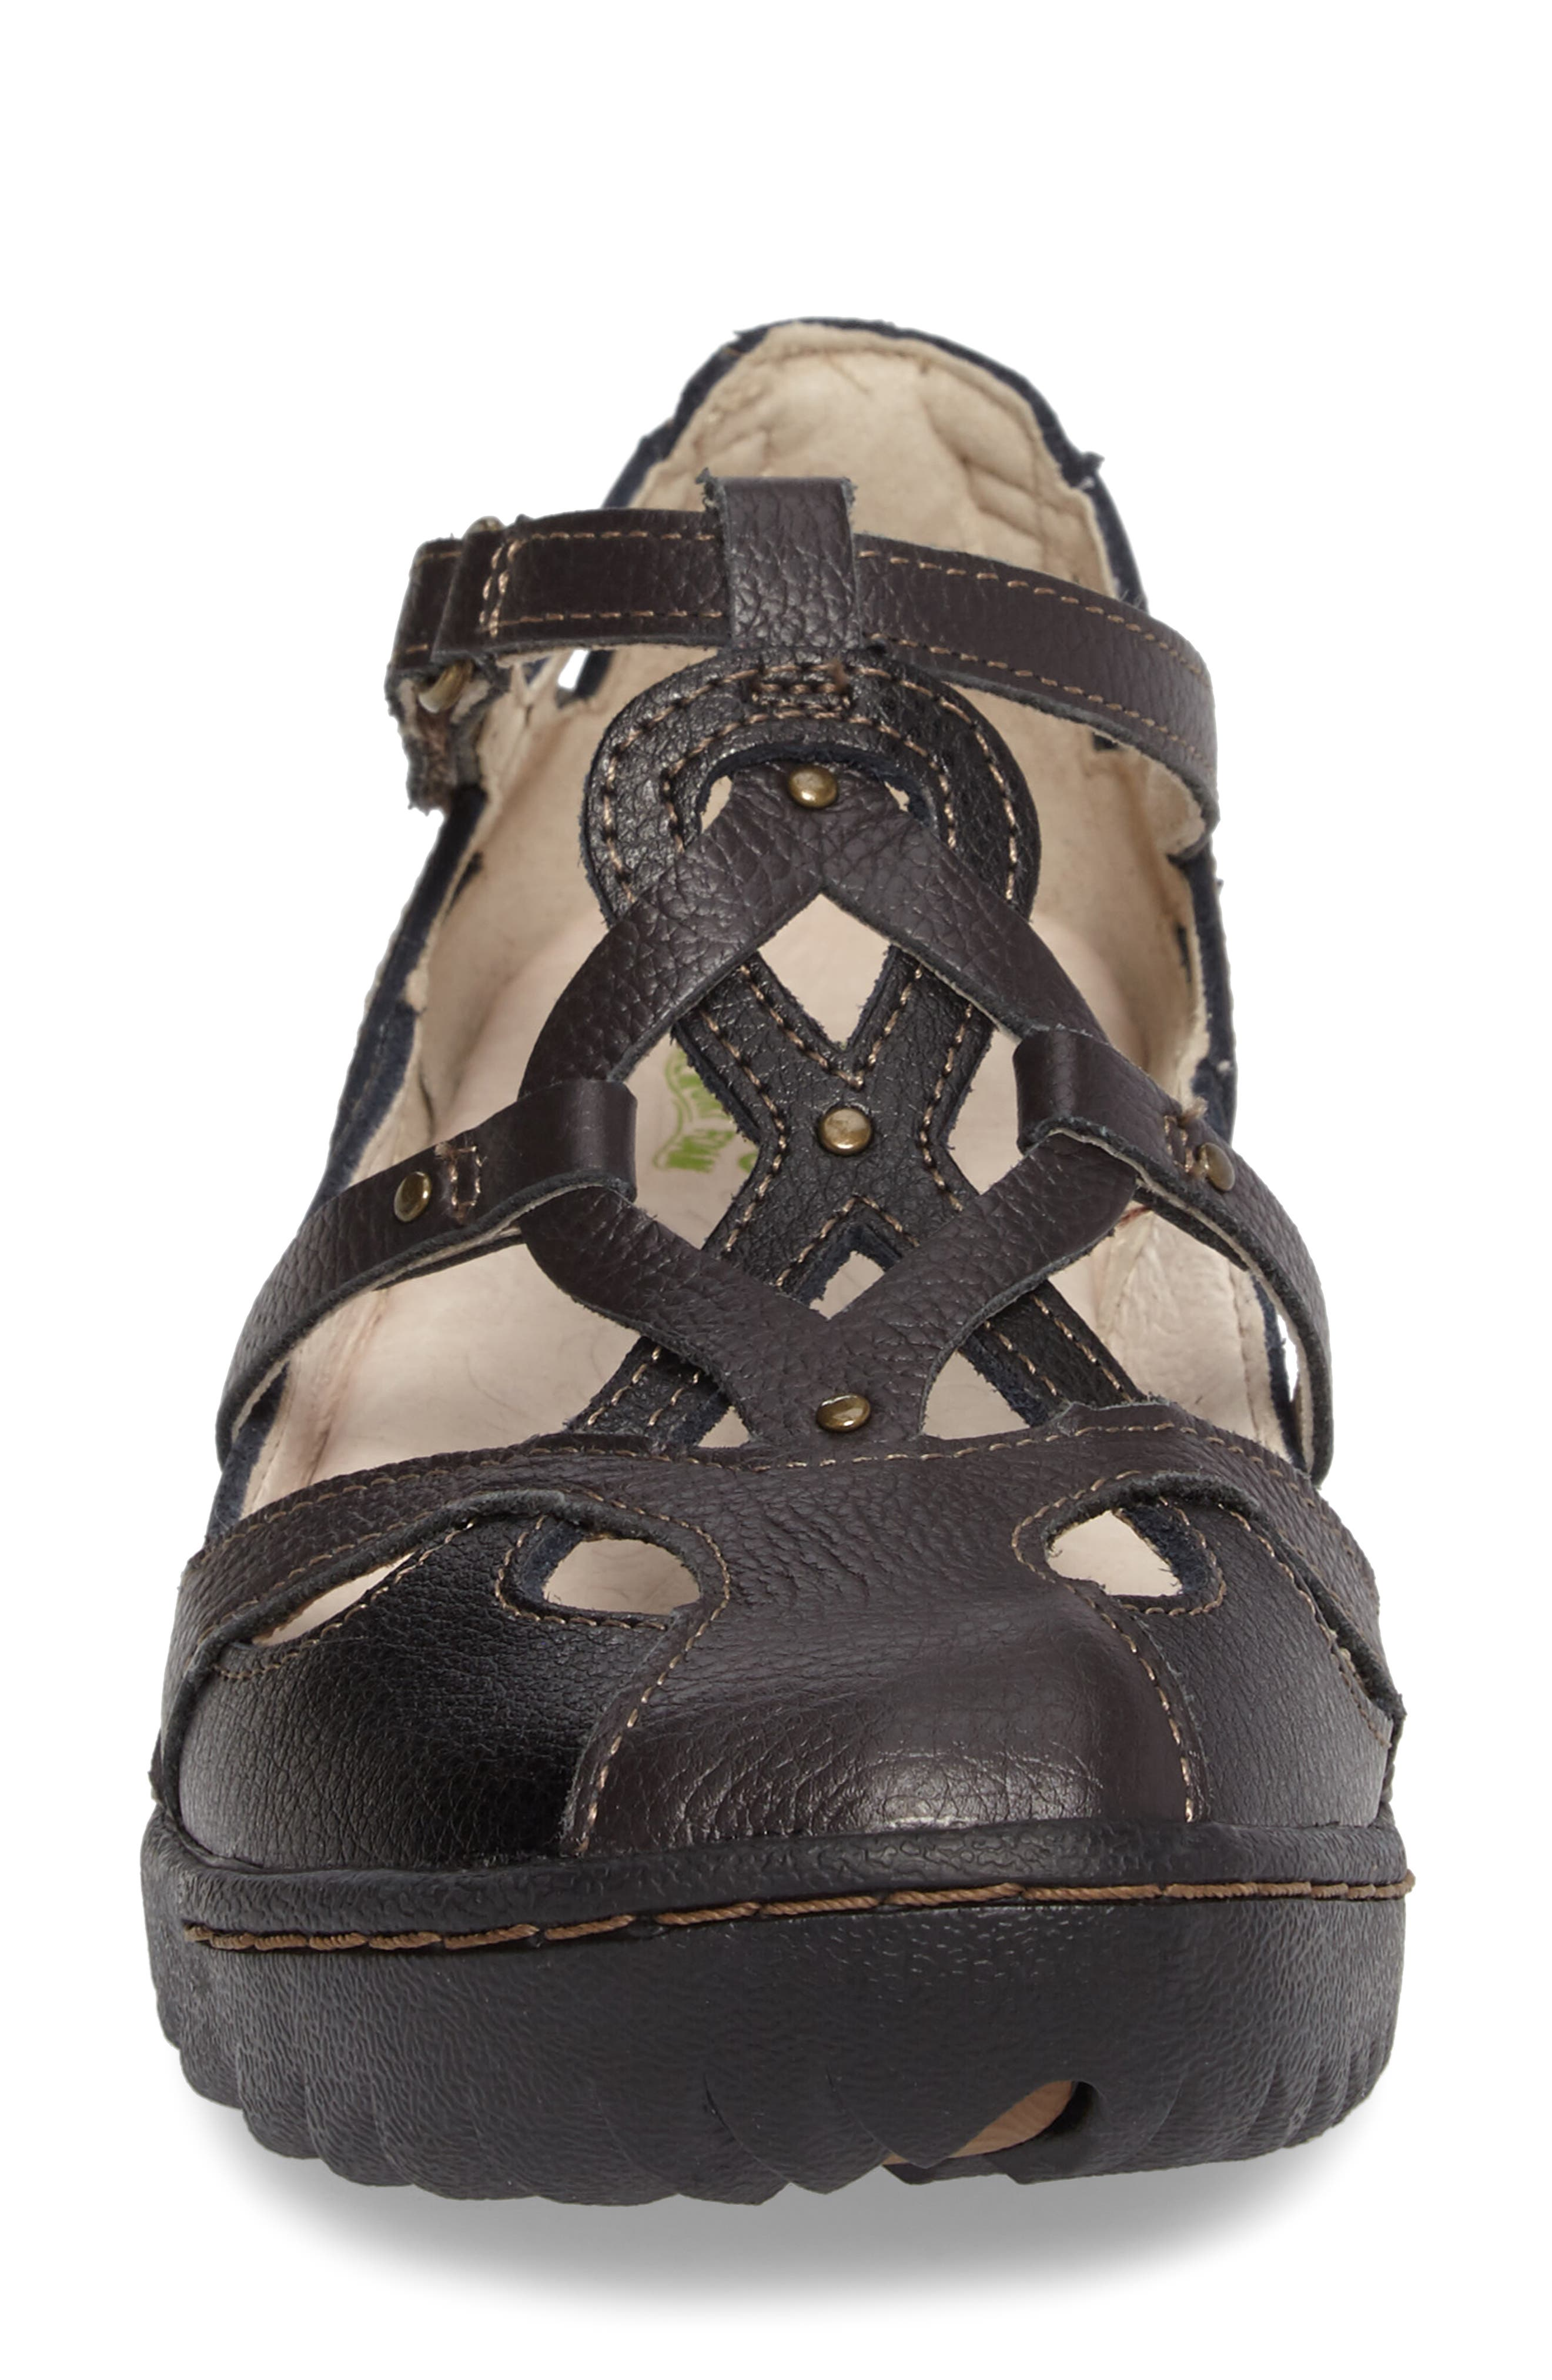 Spain Studded Strappy Sneaker,                             Alternate thumbnail 4, color,                             Black Leather